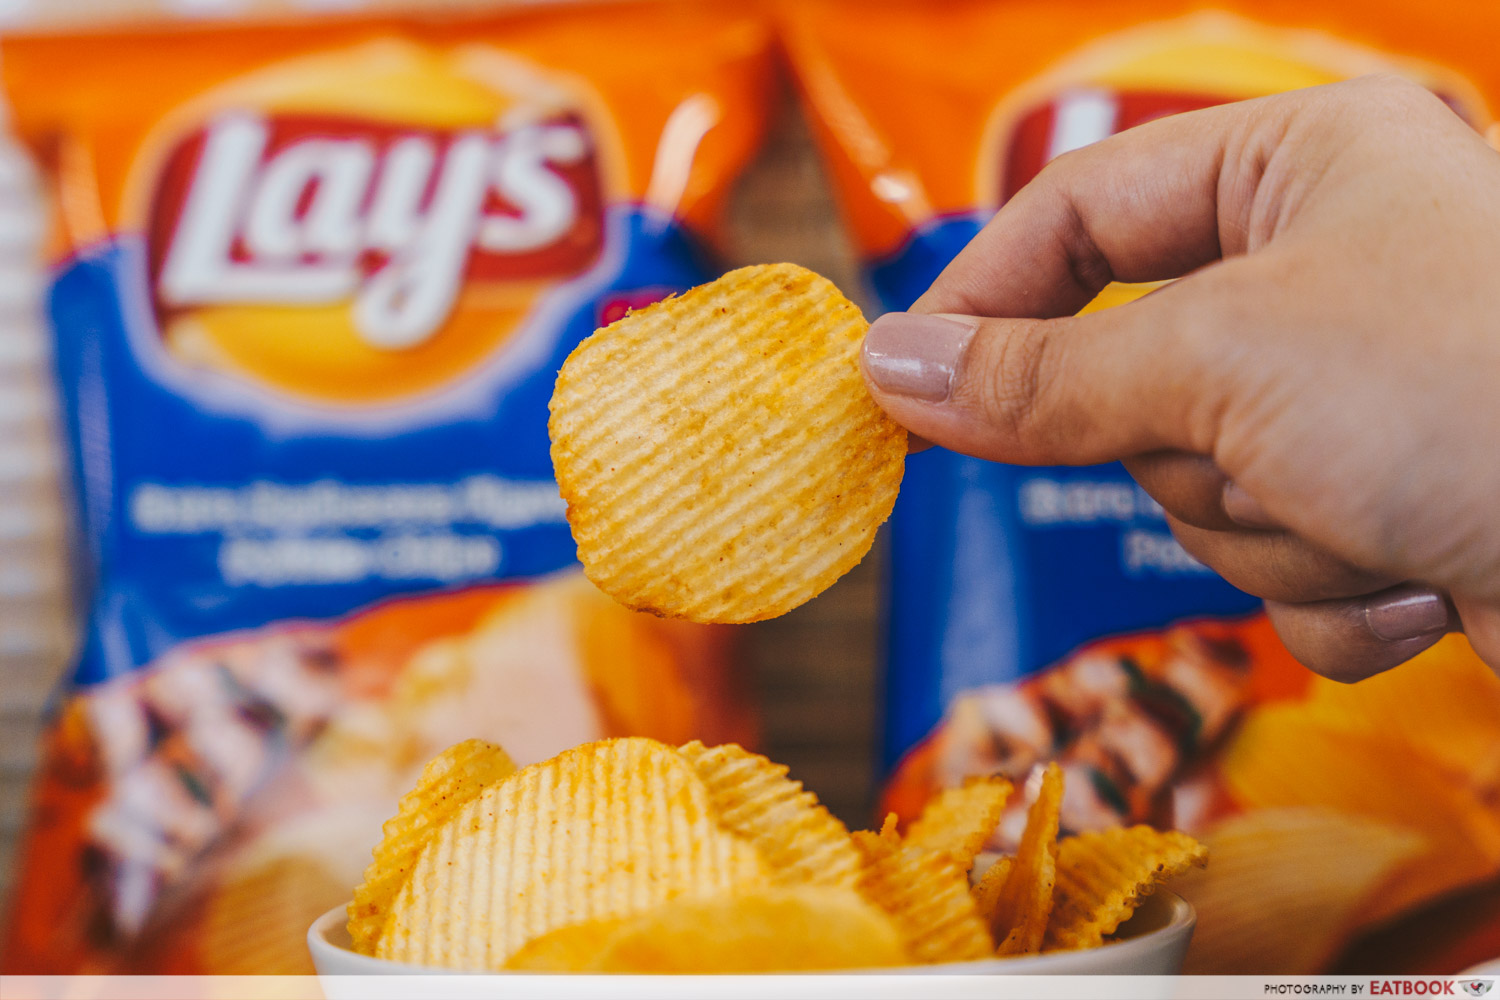 lay's potato chips - extra barbecue